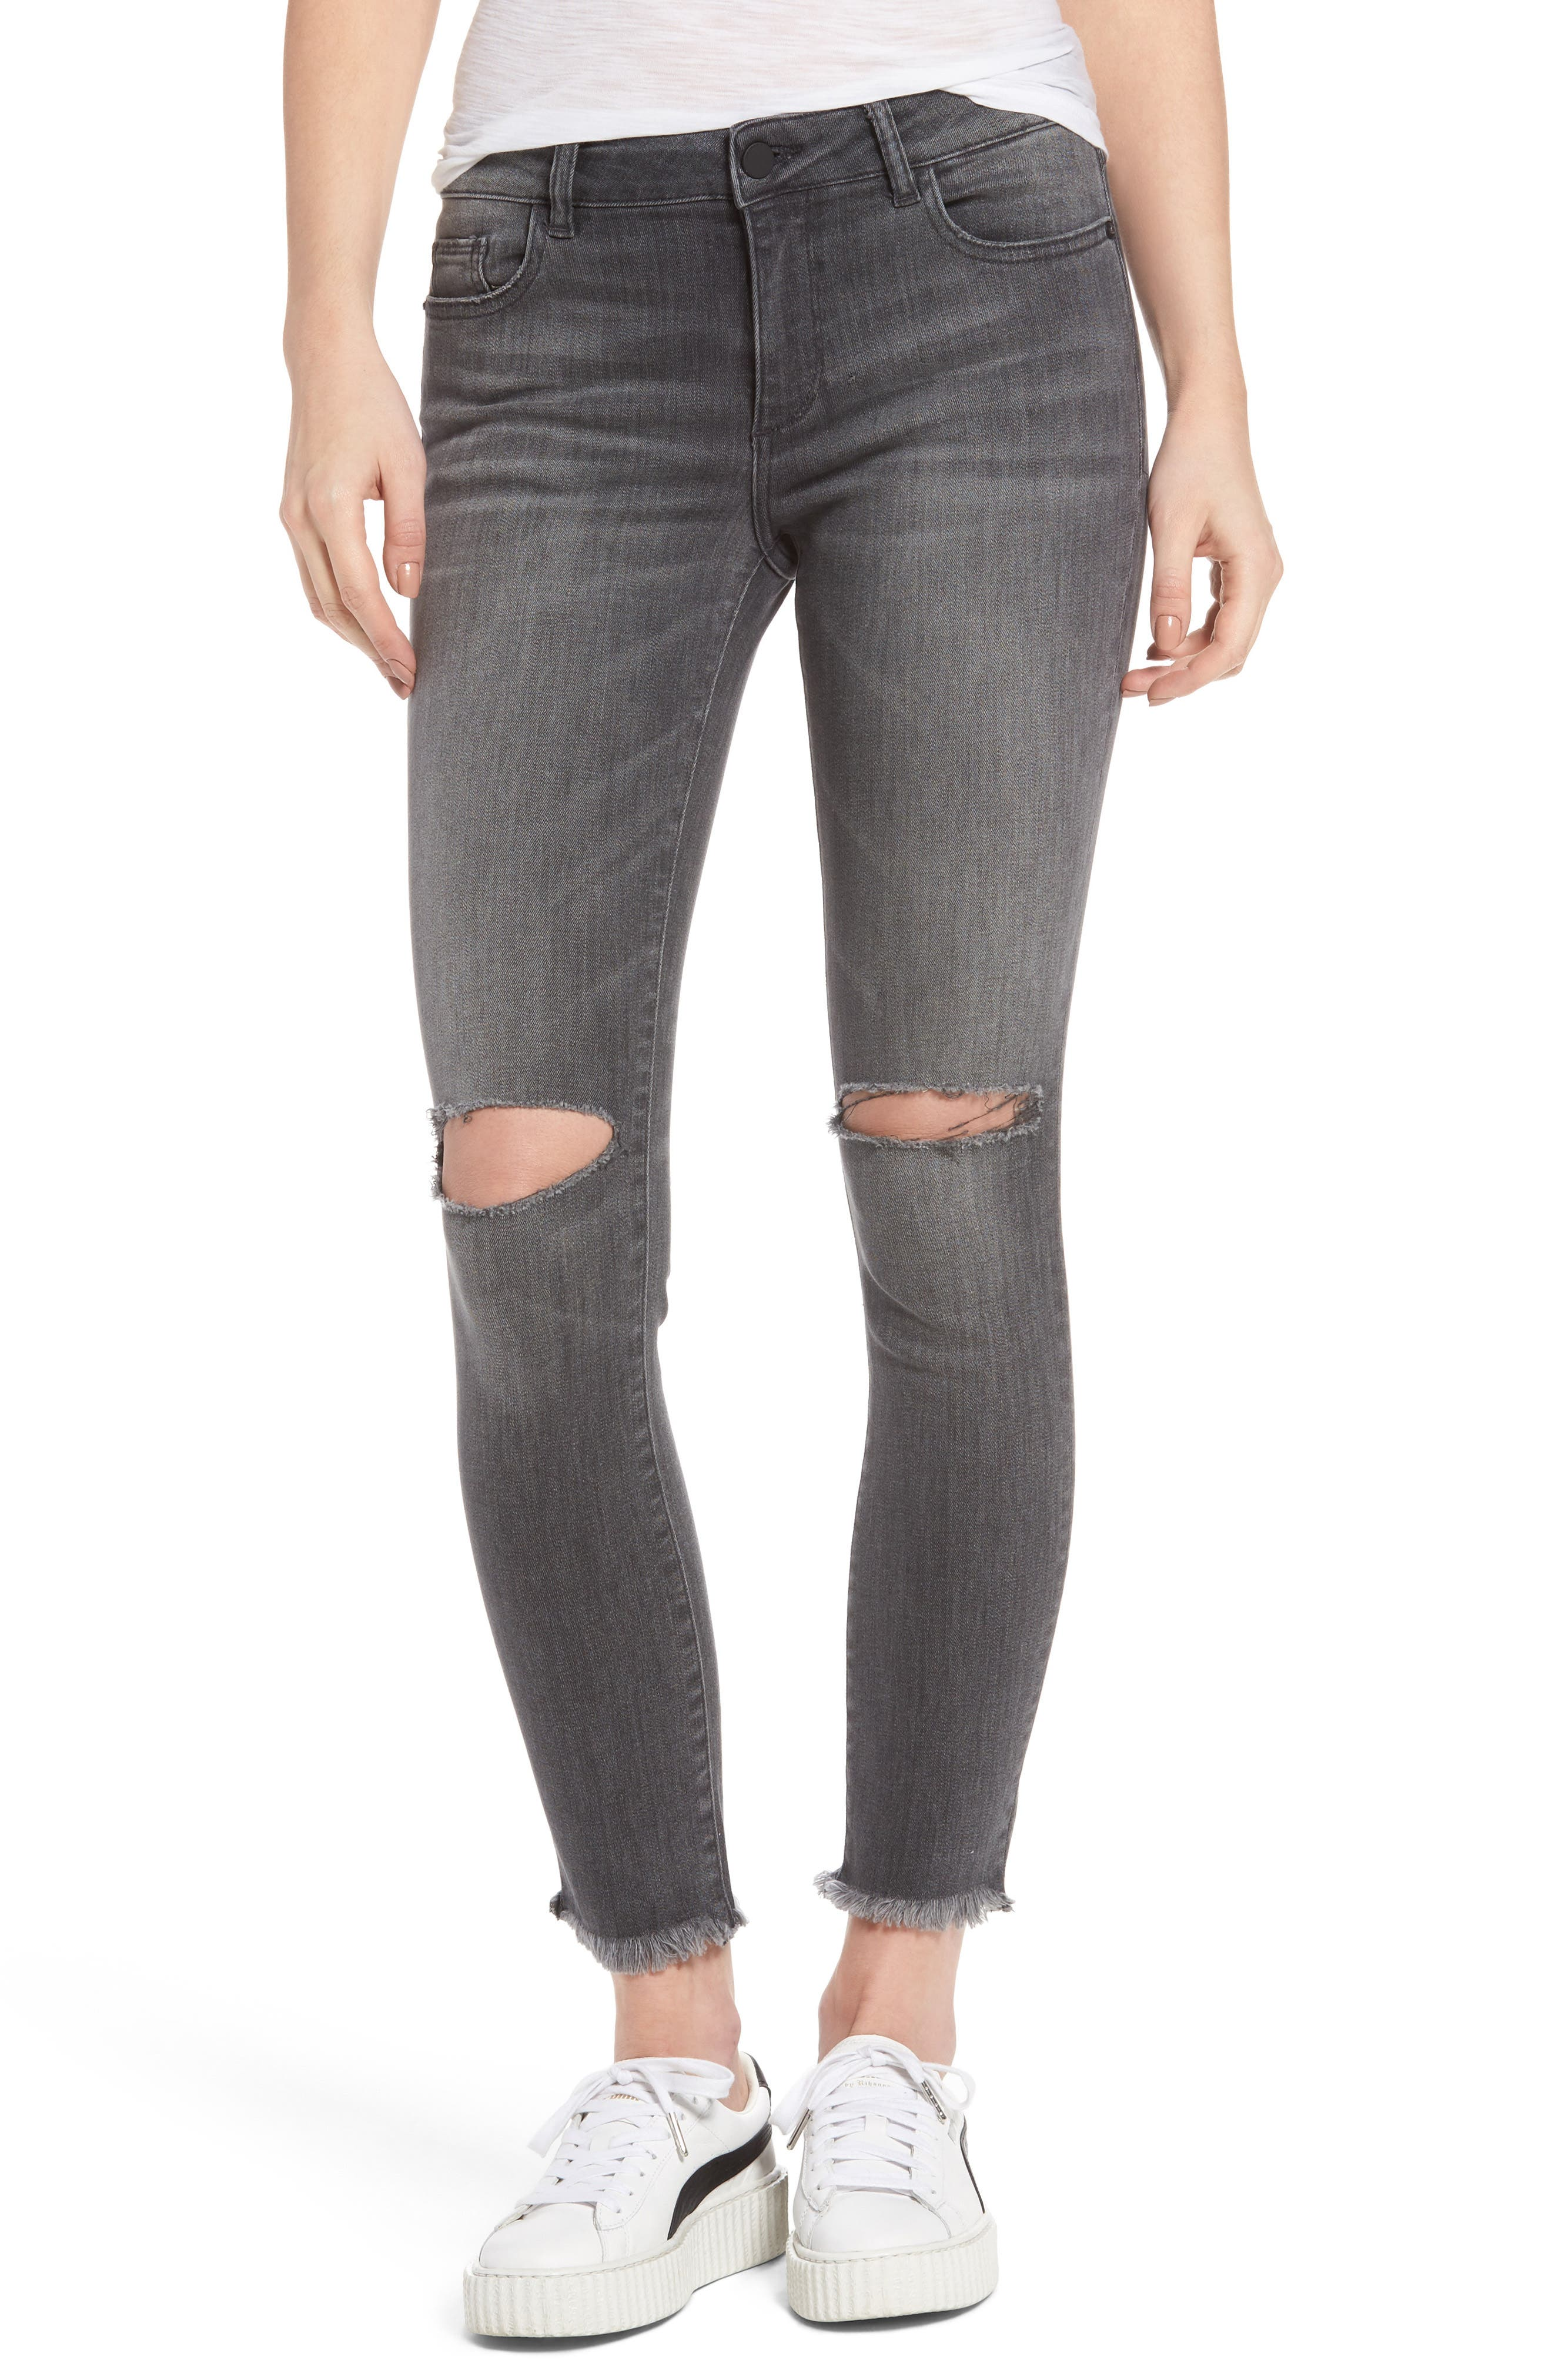 Alternate Image 1 Selected - DL1961 Margaux Ripped Ankle Skinny Jeans (Quaker)